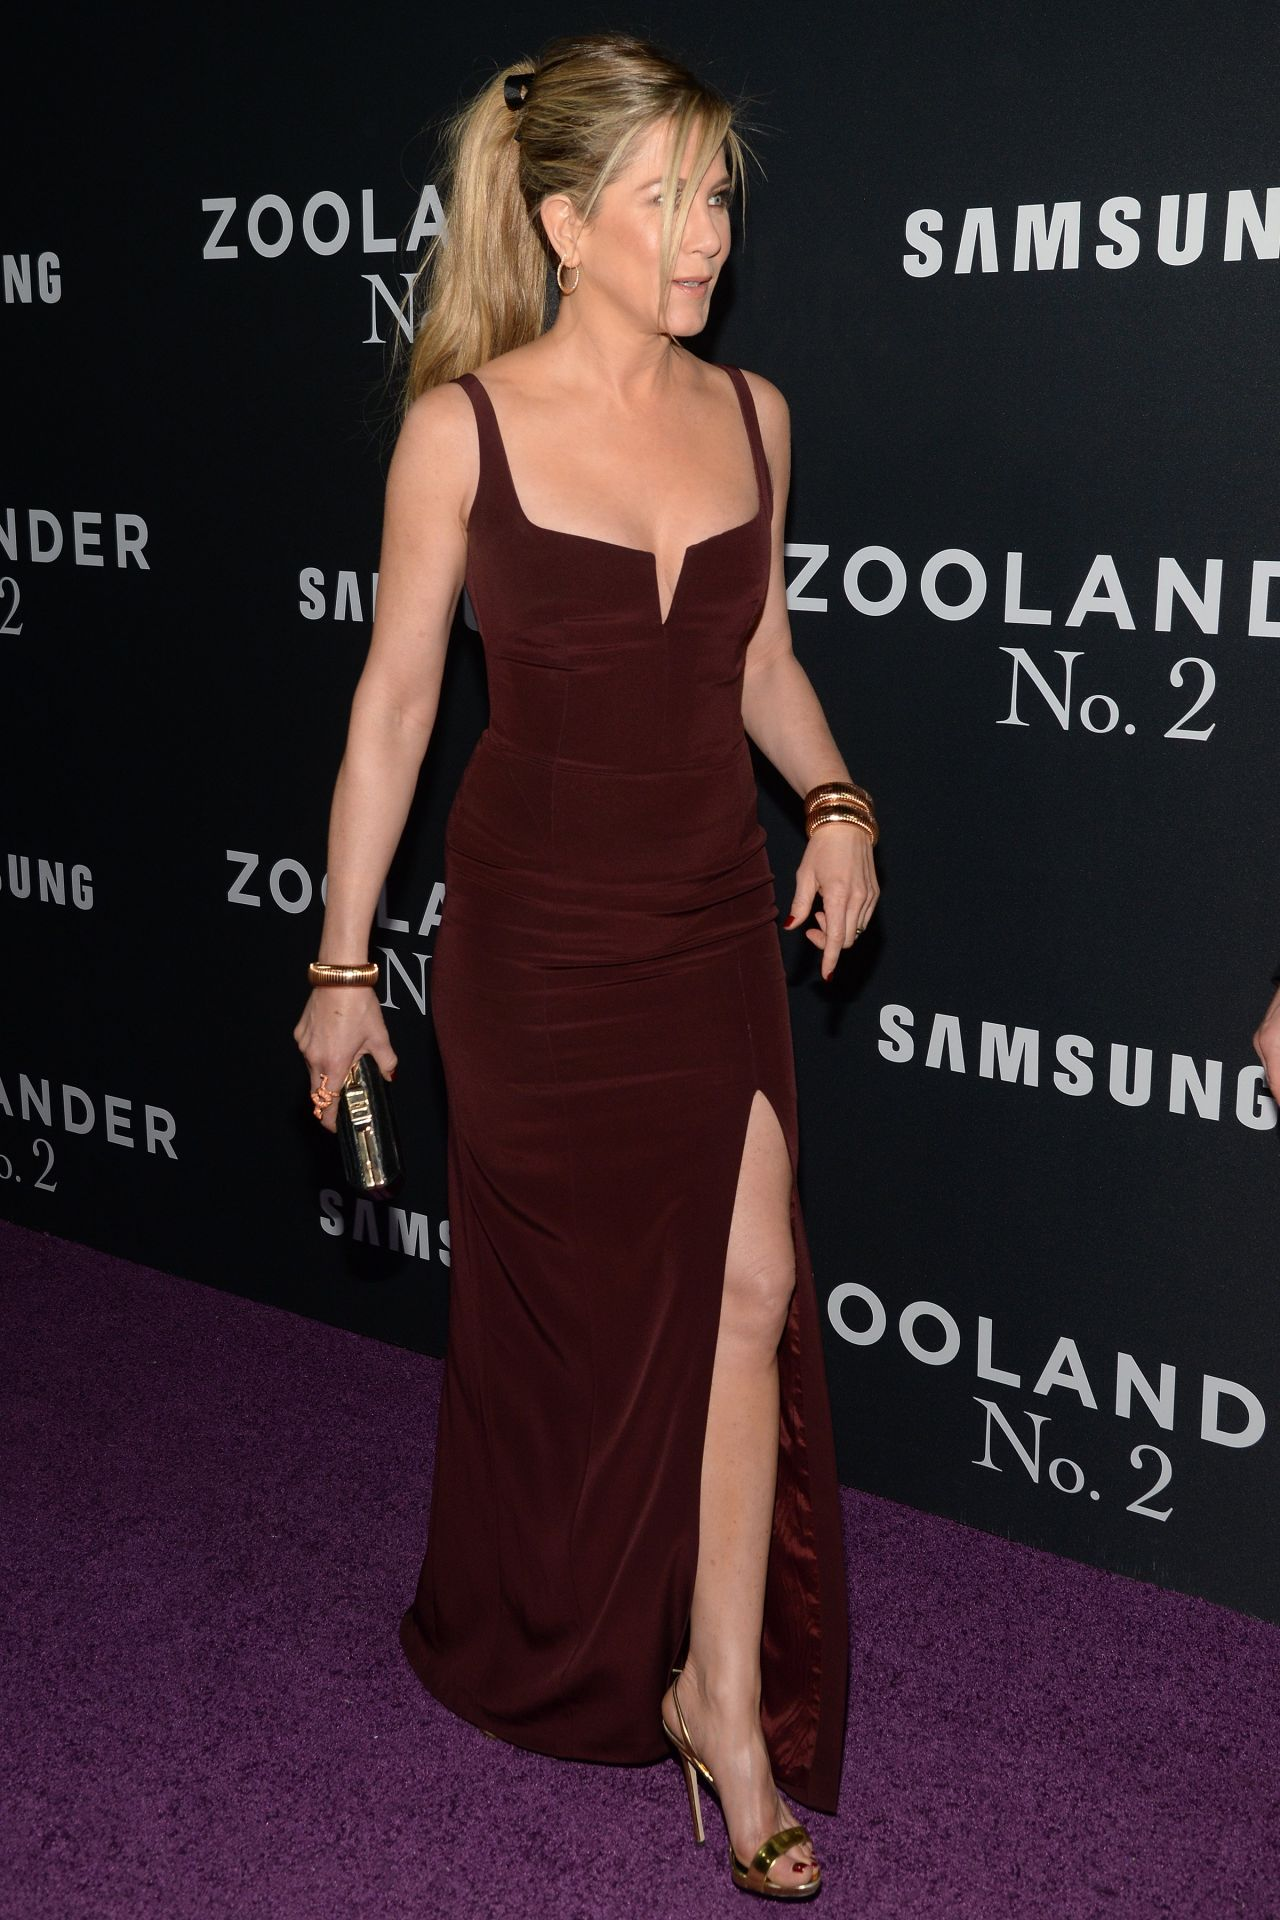 jennifer-aniston-zoolander-2-world-premiere-in-new-york-city-ny-16